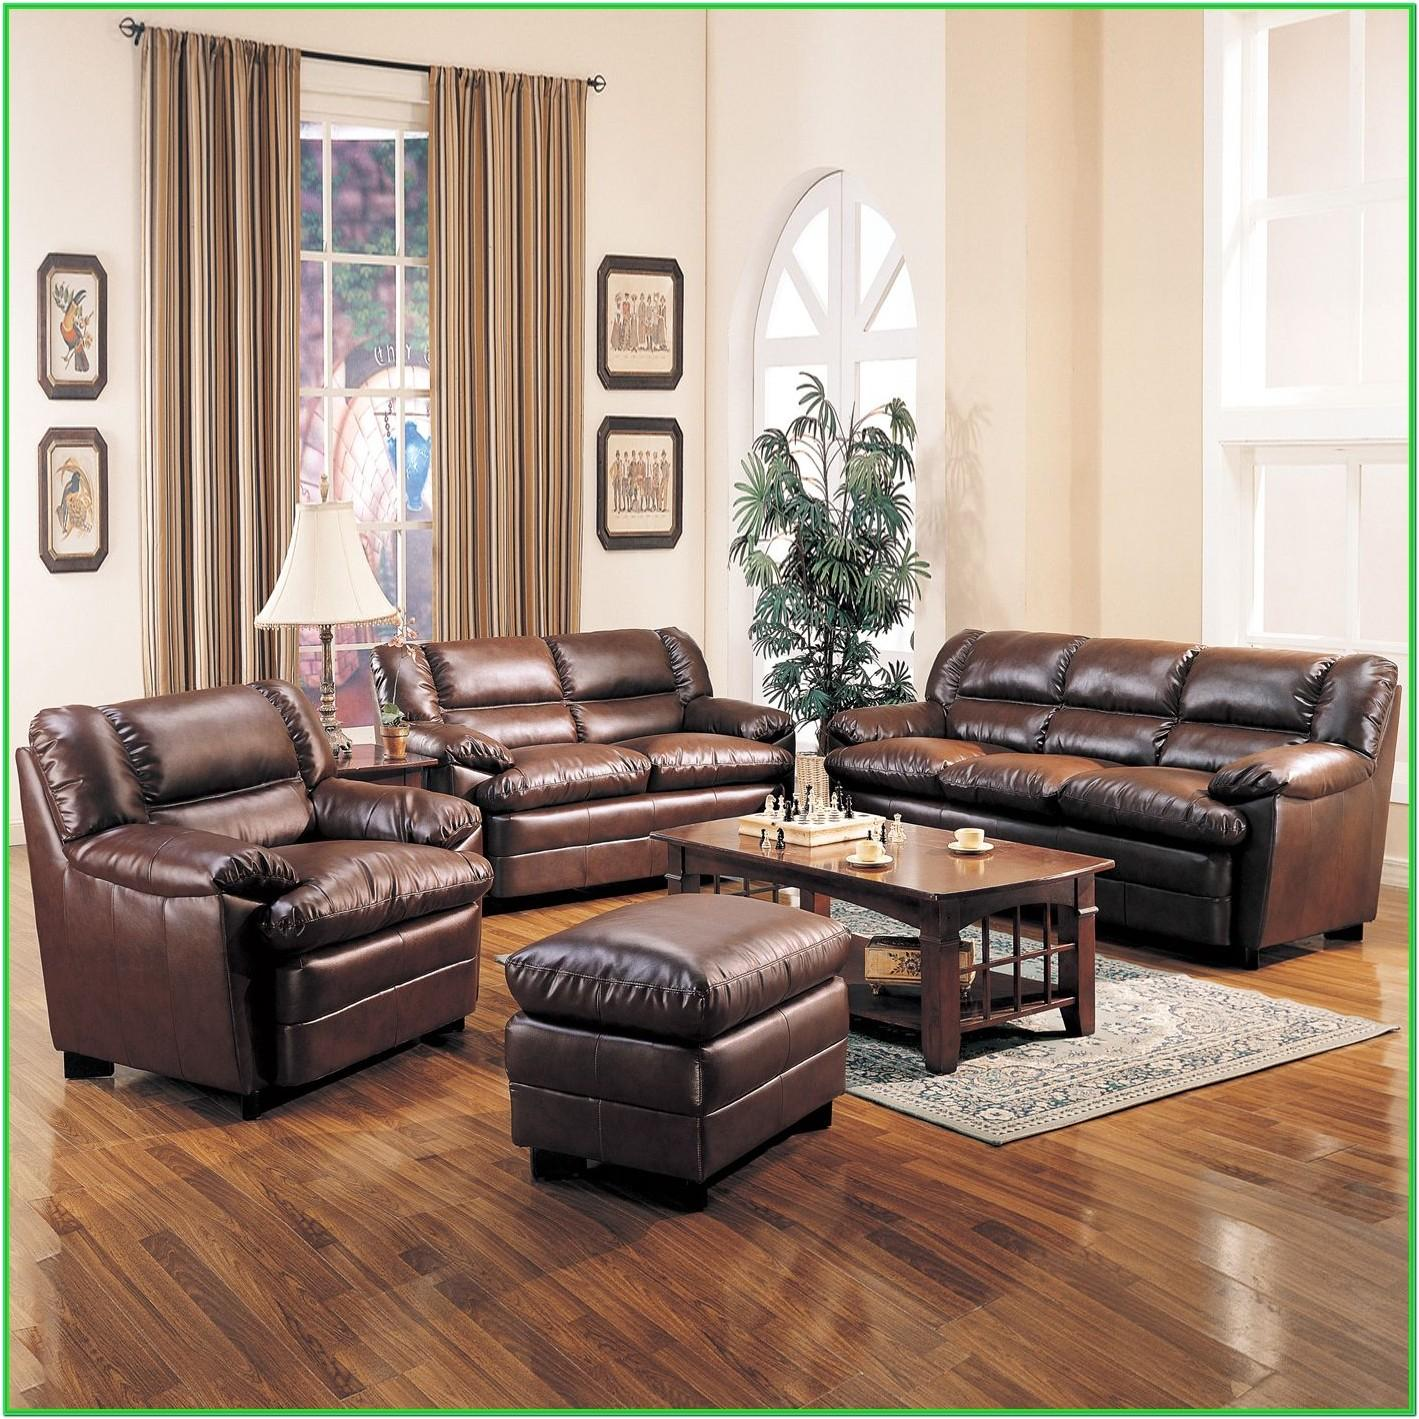 Living Room Wall Colors With Brown Leather Furniture